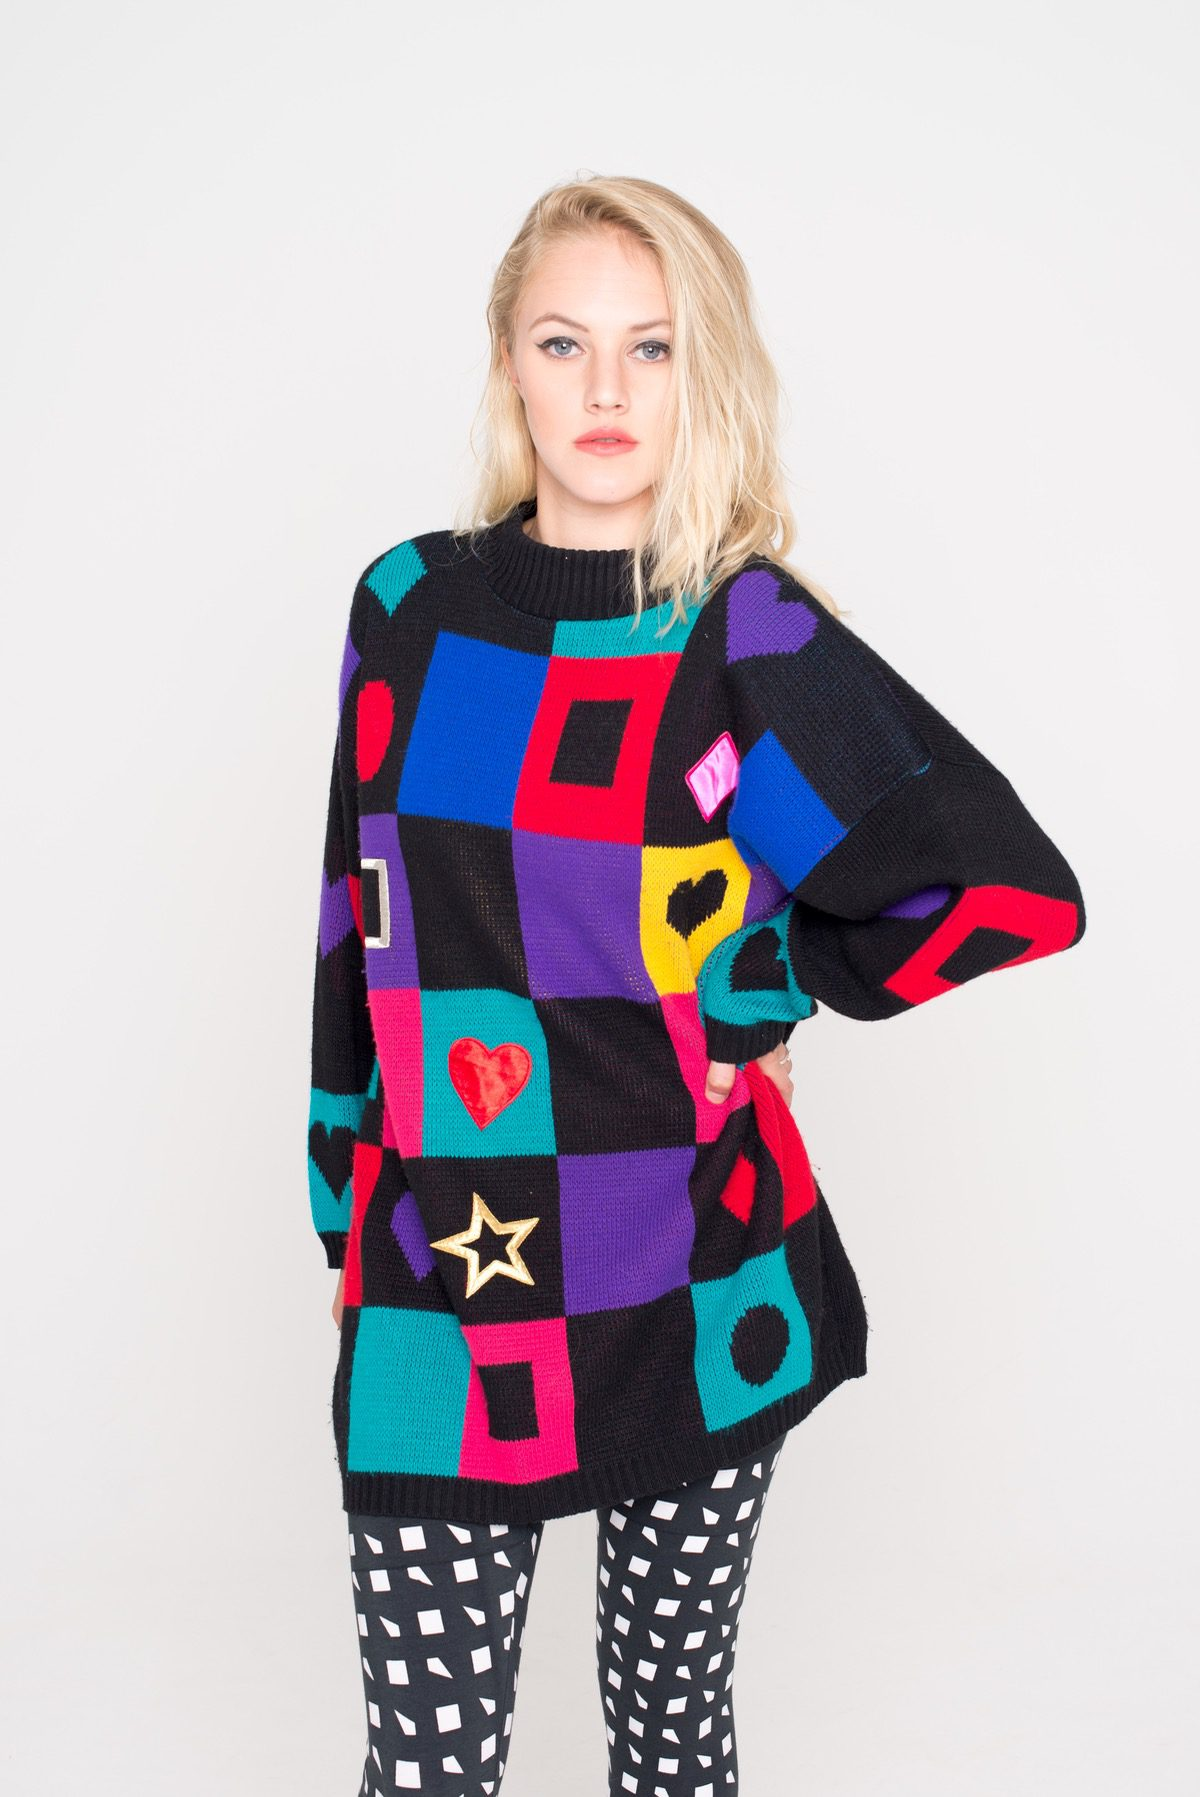 536d0f0eedfd Colourful Patterned Vintage Jumper - That Thing